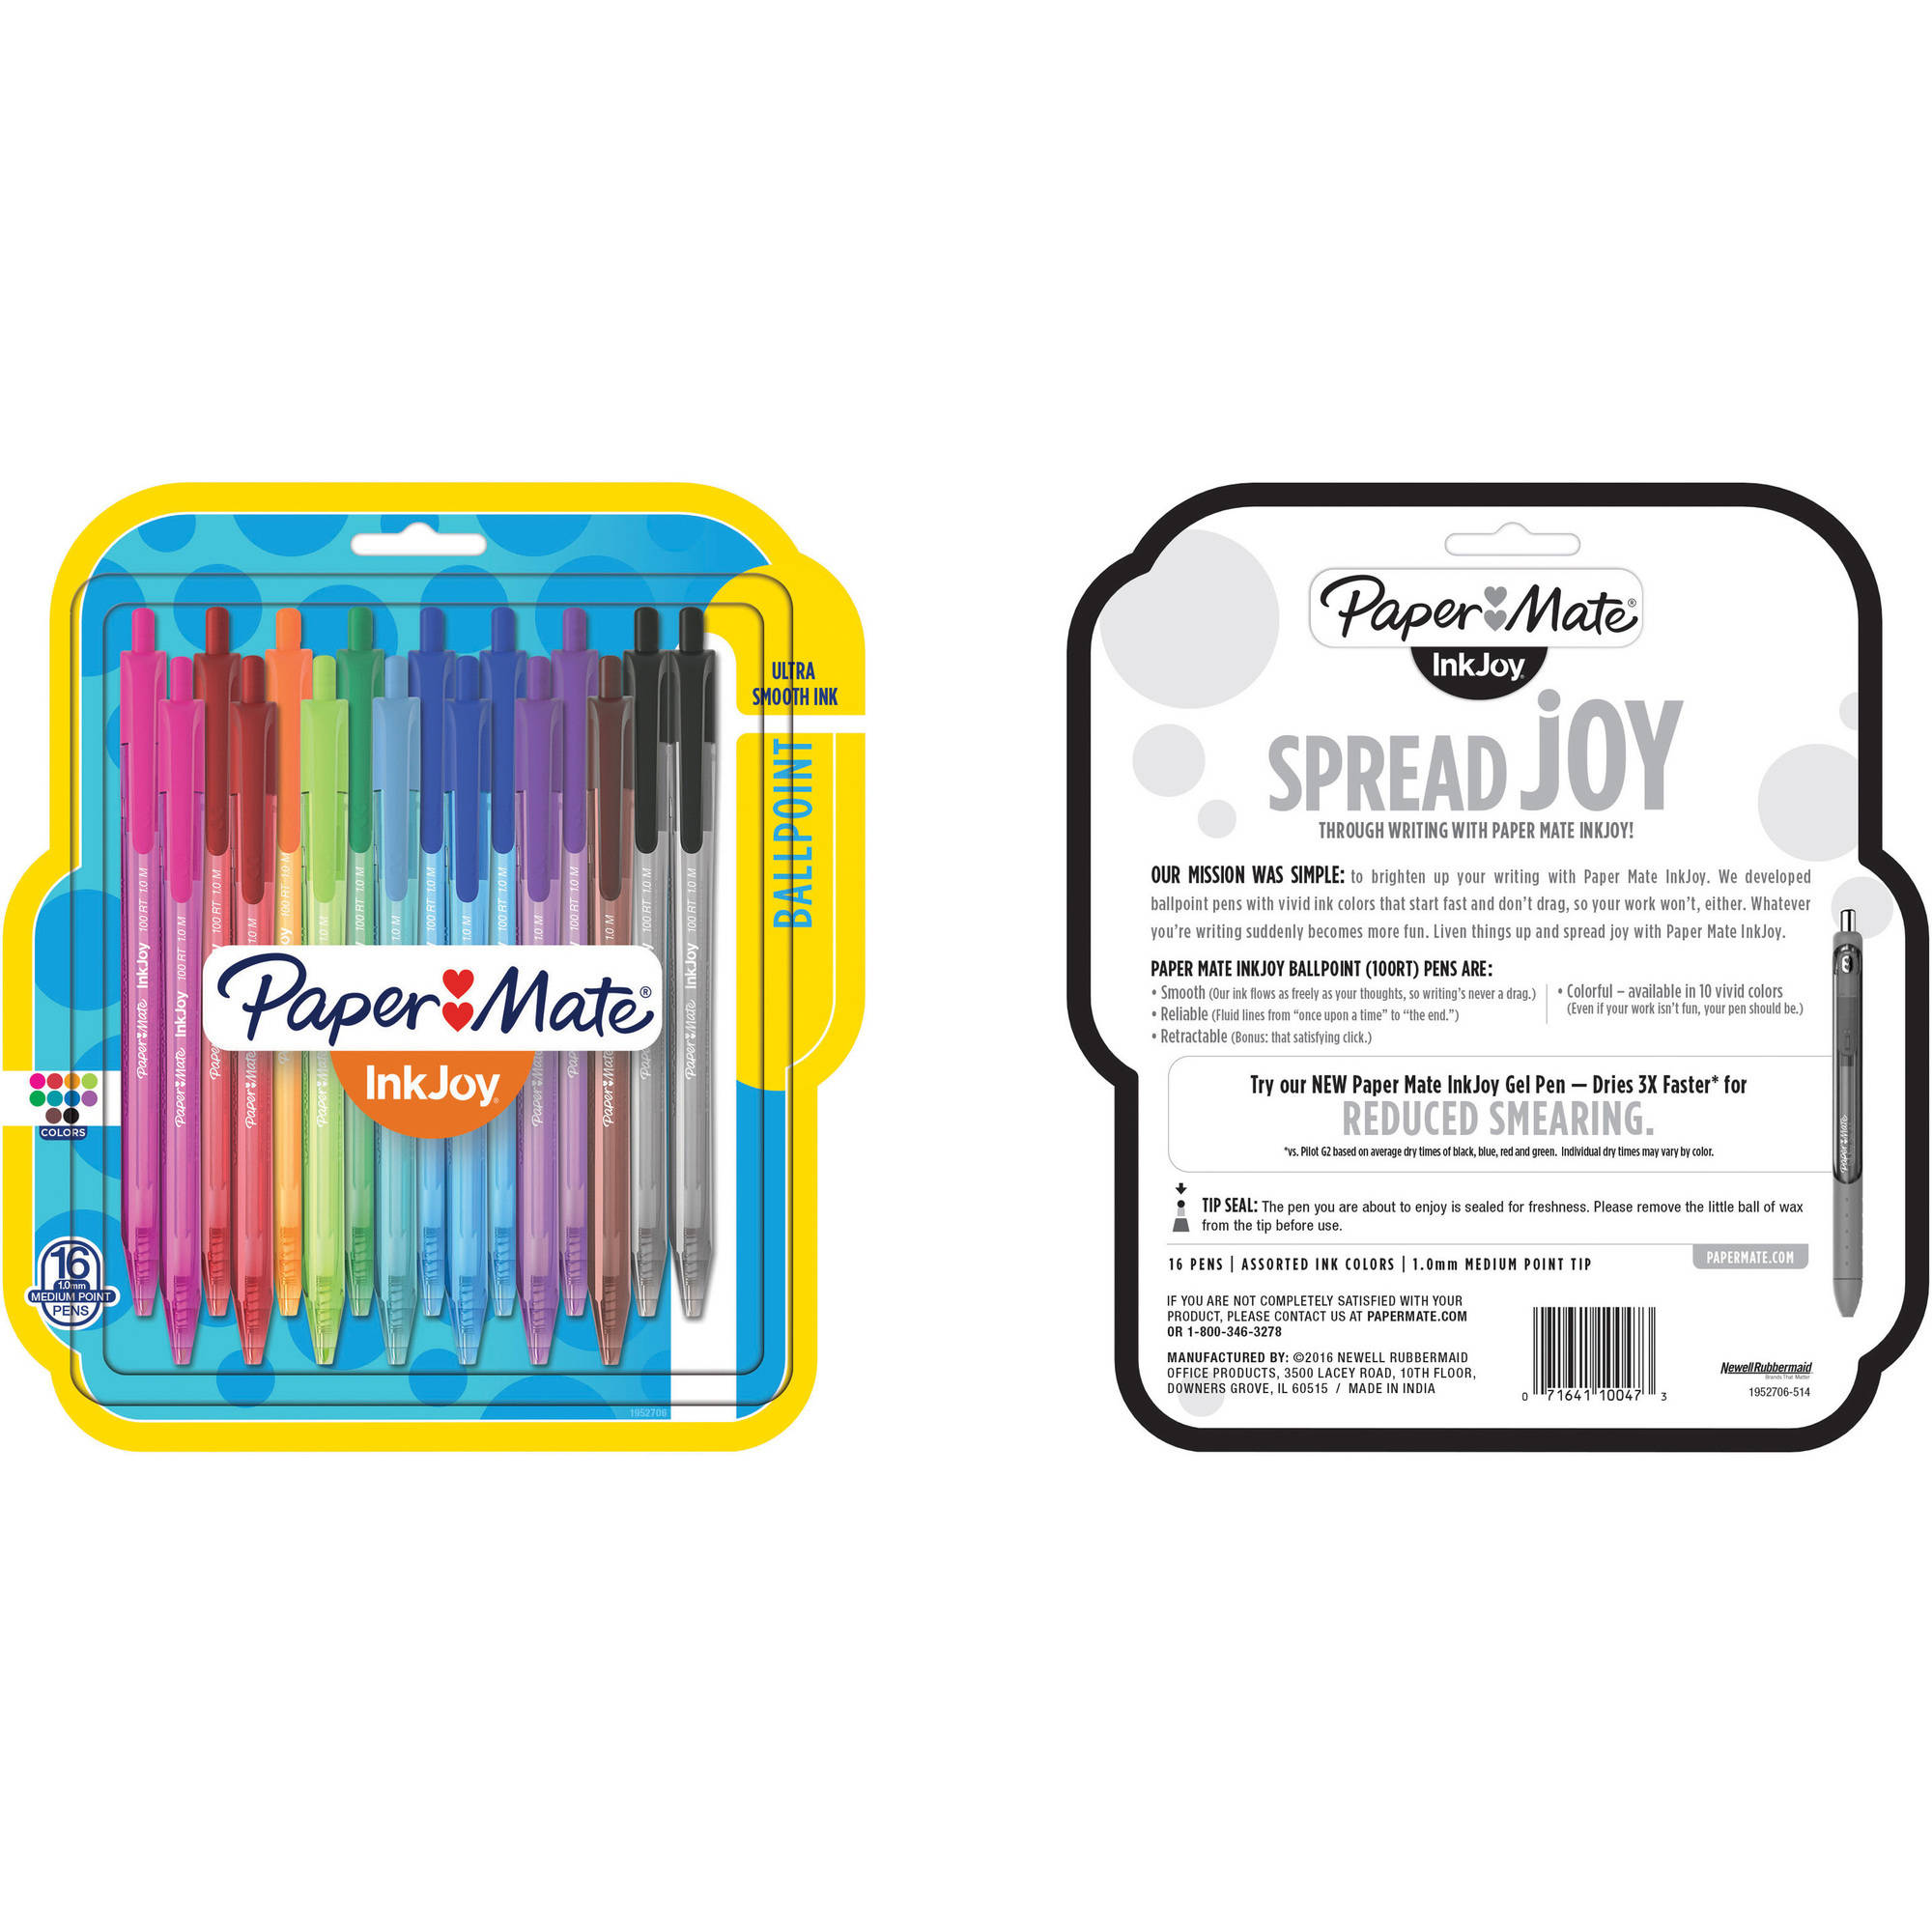 Papermate Inkjoy 100rt Assorted 16ct